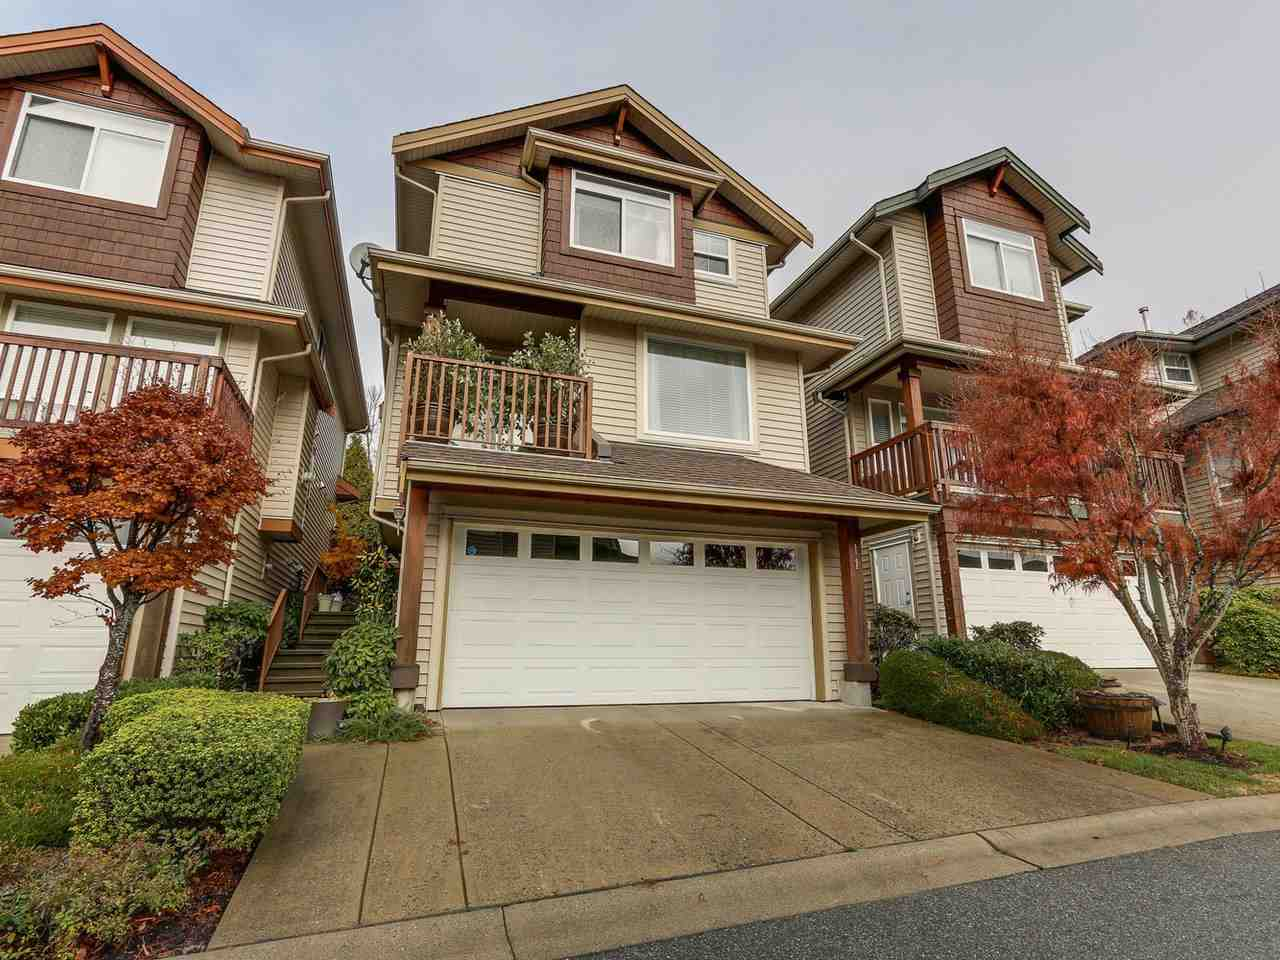 11 2381 ARGUE STREET, Port Coquitlam